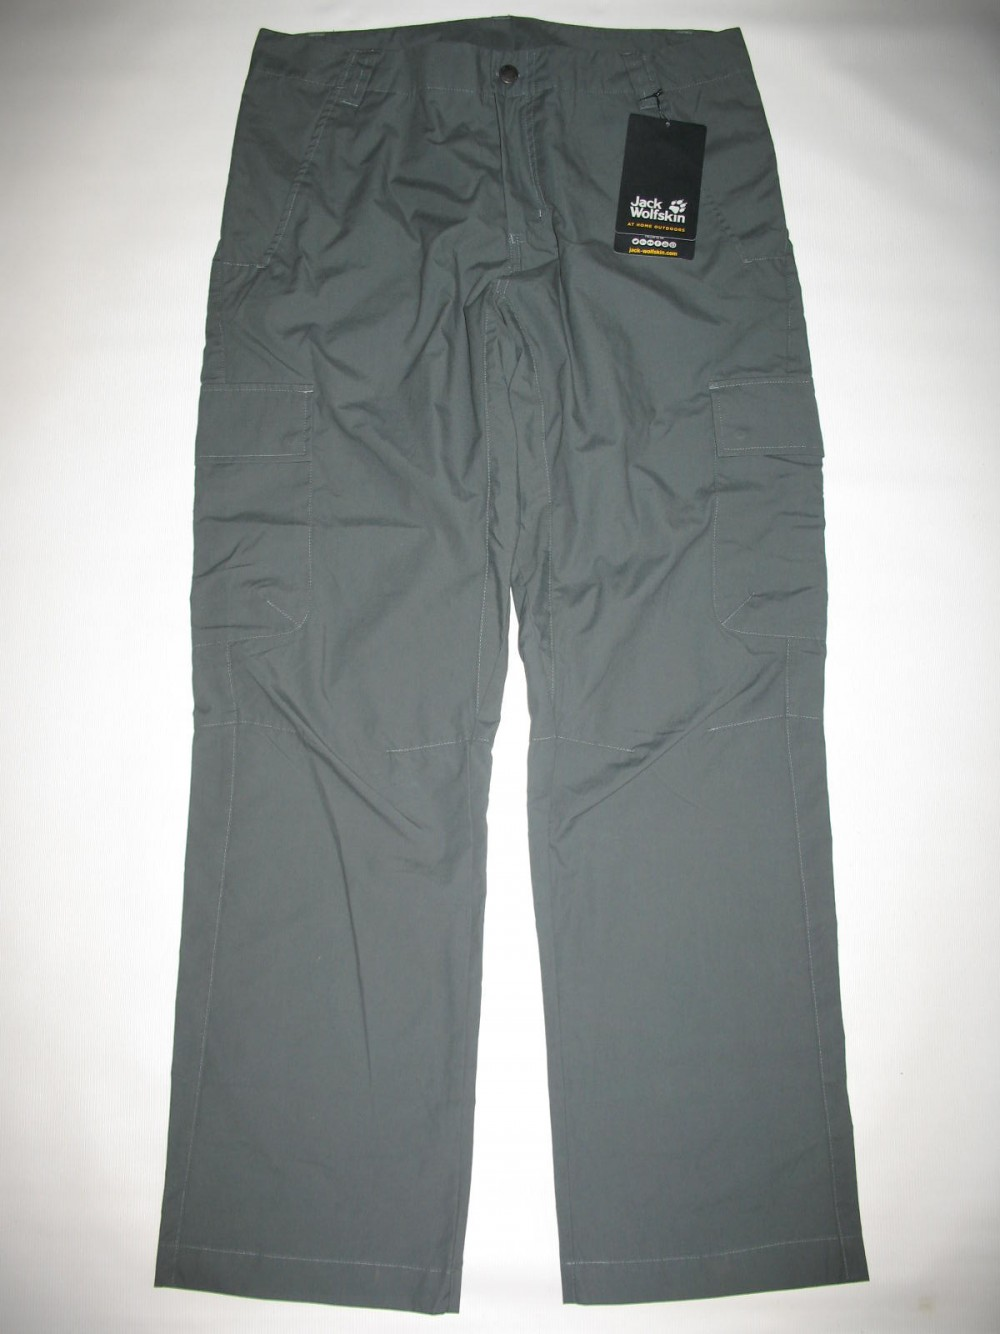 Штаны JACK WOLFSKIN North evo pants (размер 50/L) - 4